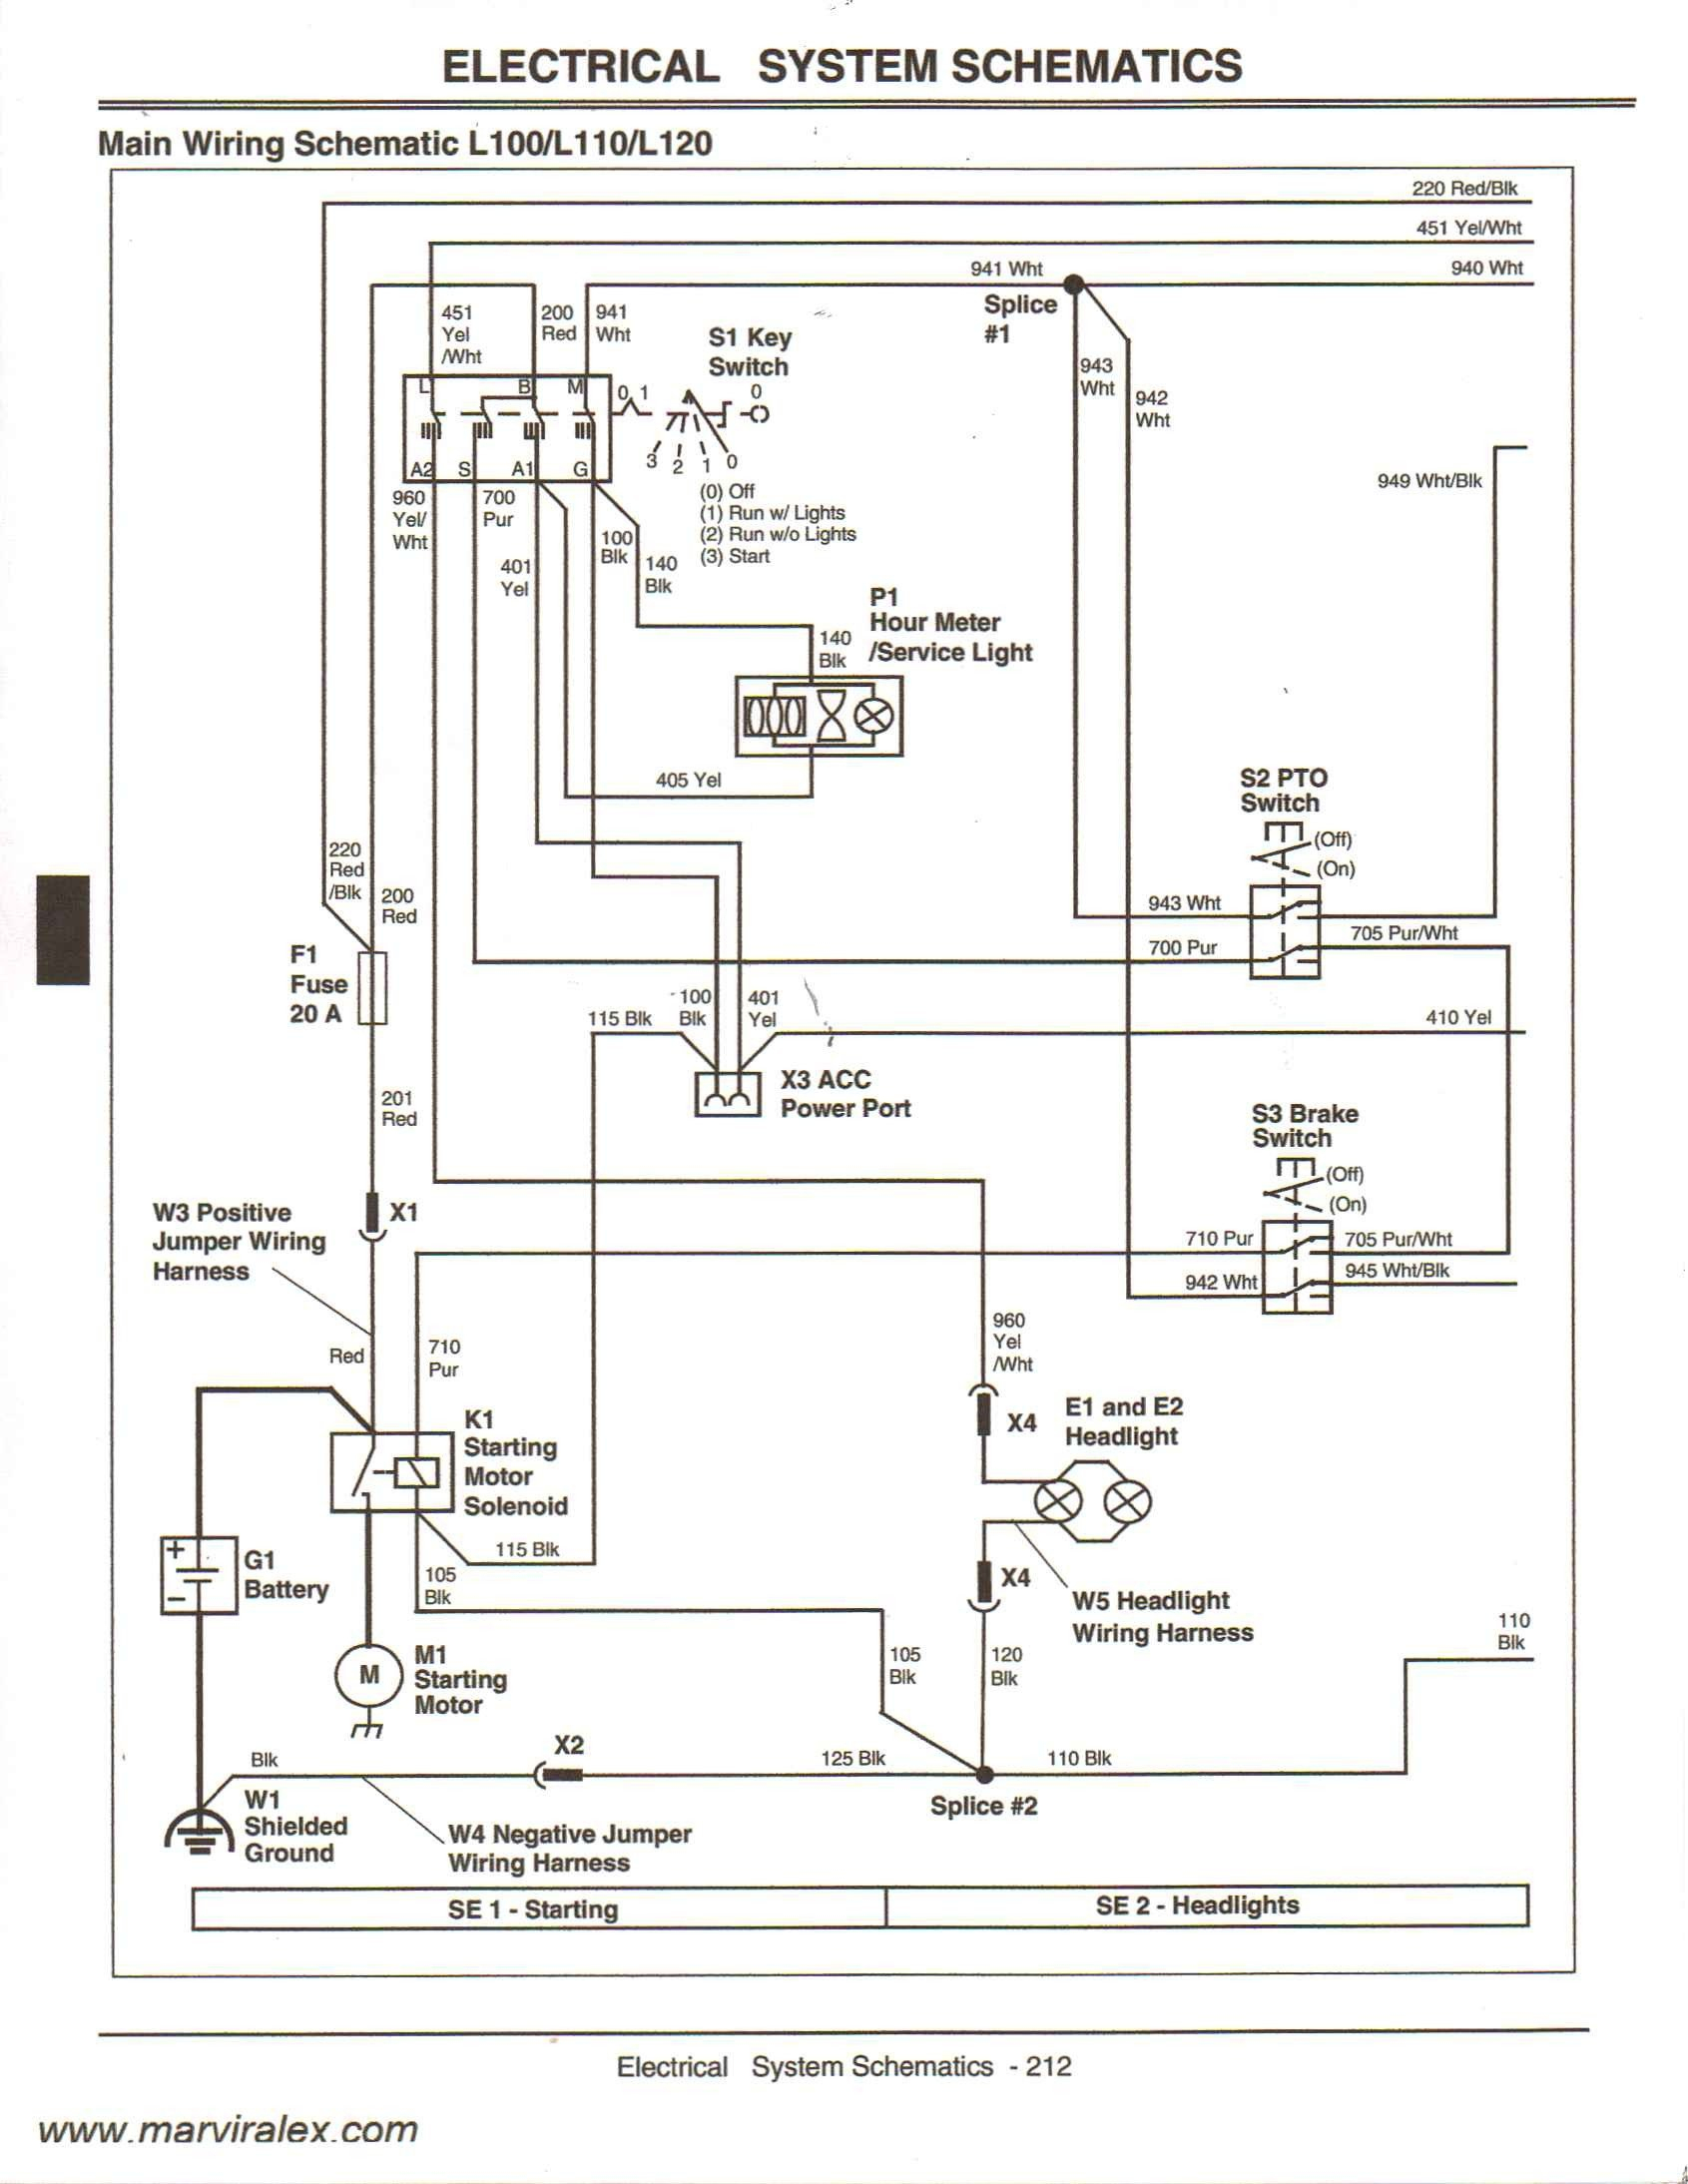 1945 John Deere Wiring Diagram - Trusted Wiring Diagrams • - John Deere Ignition Switch Wiring Diagram